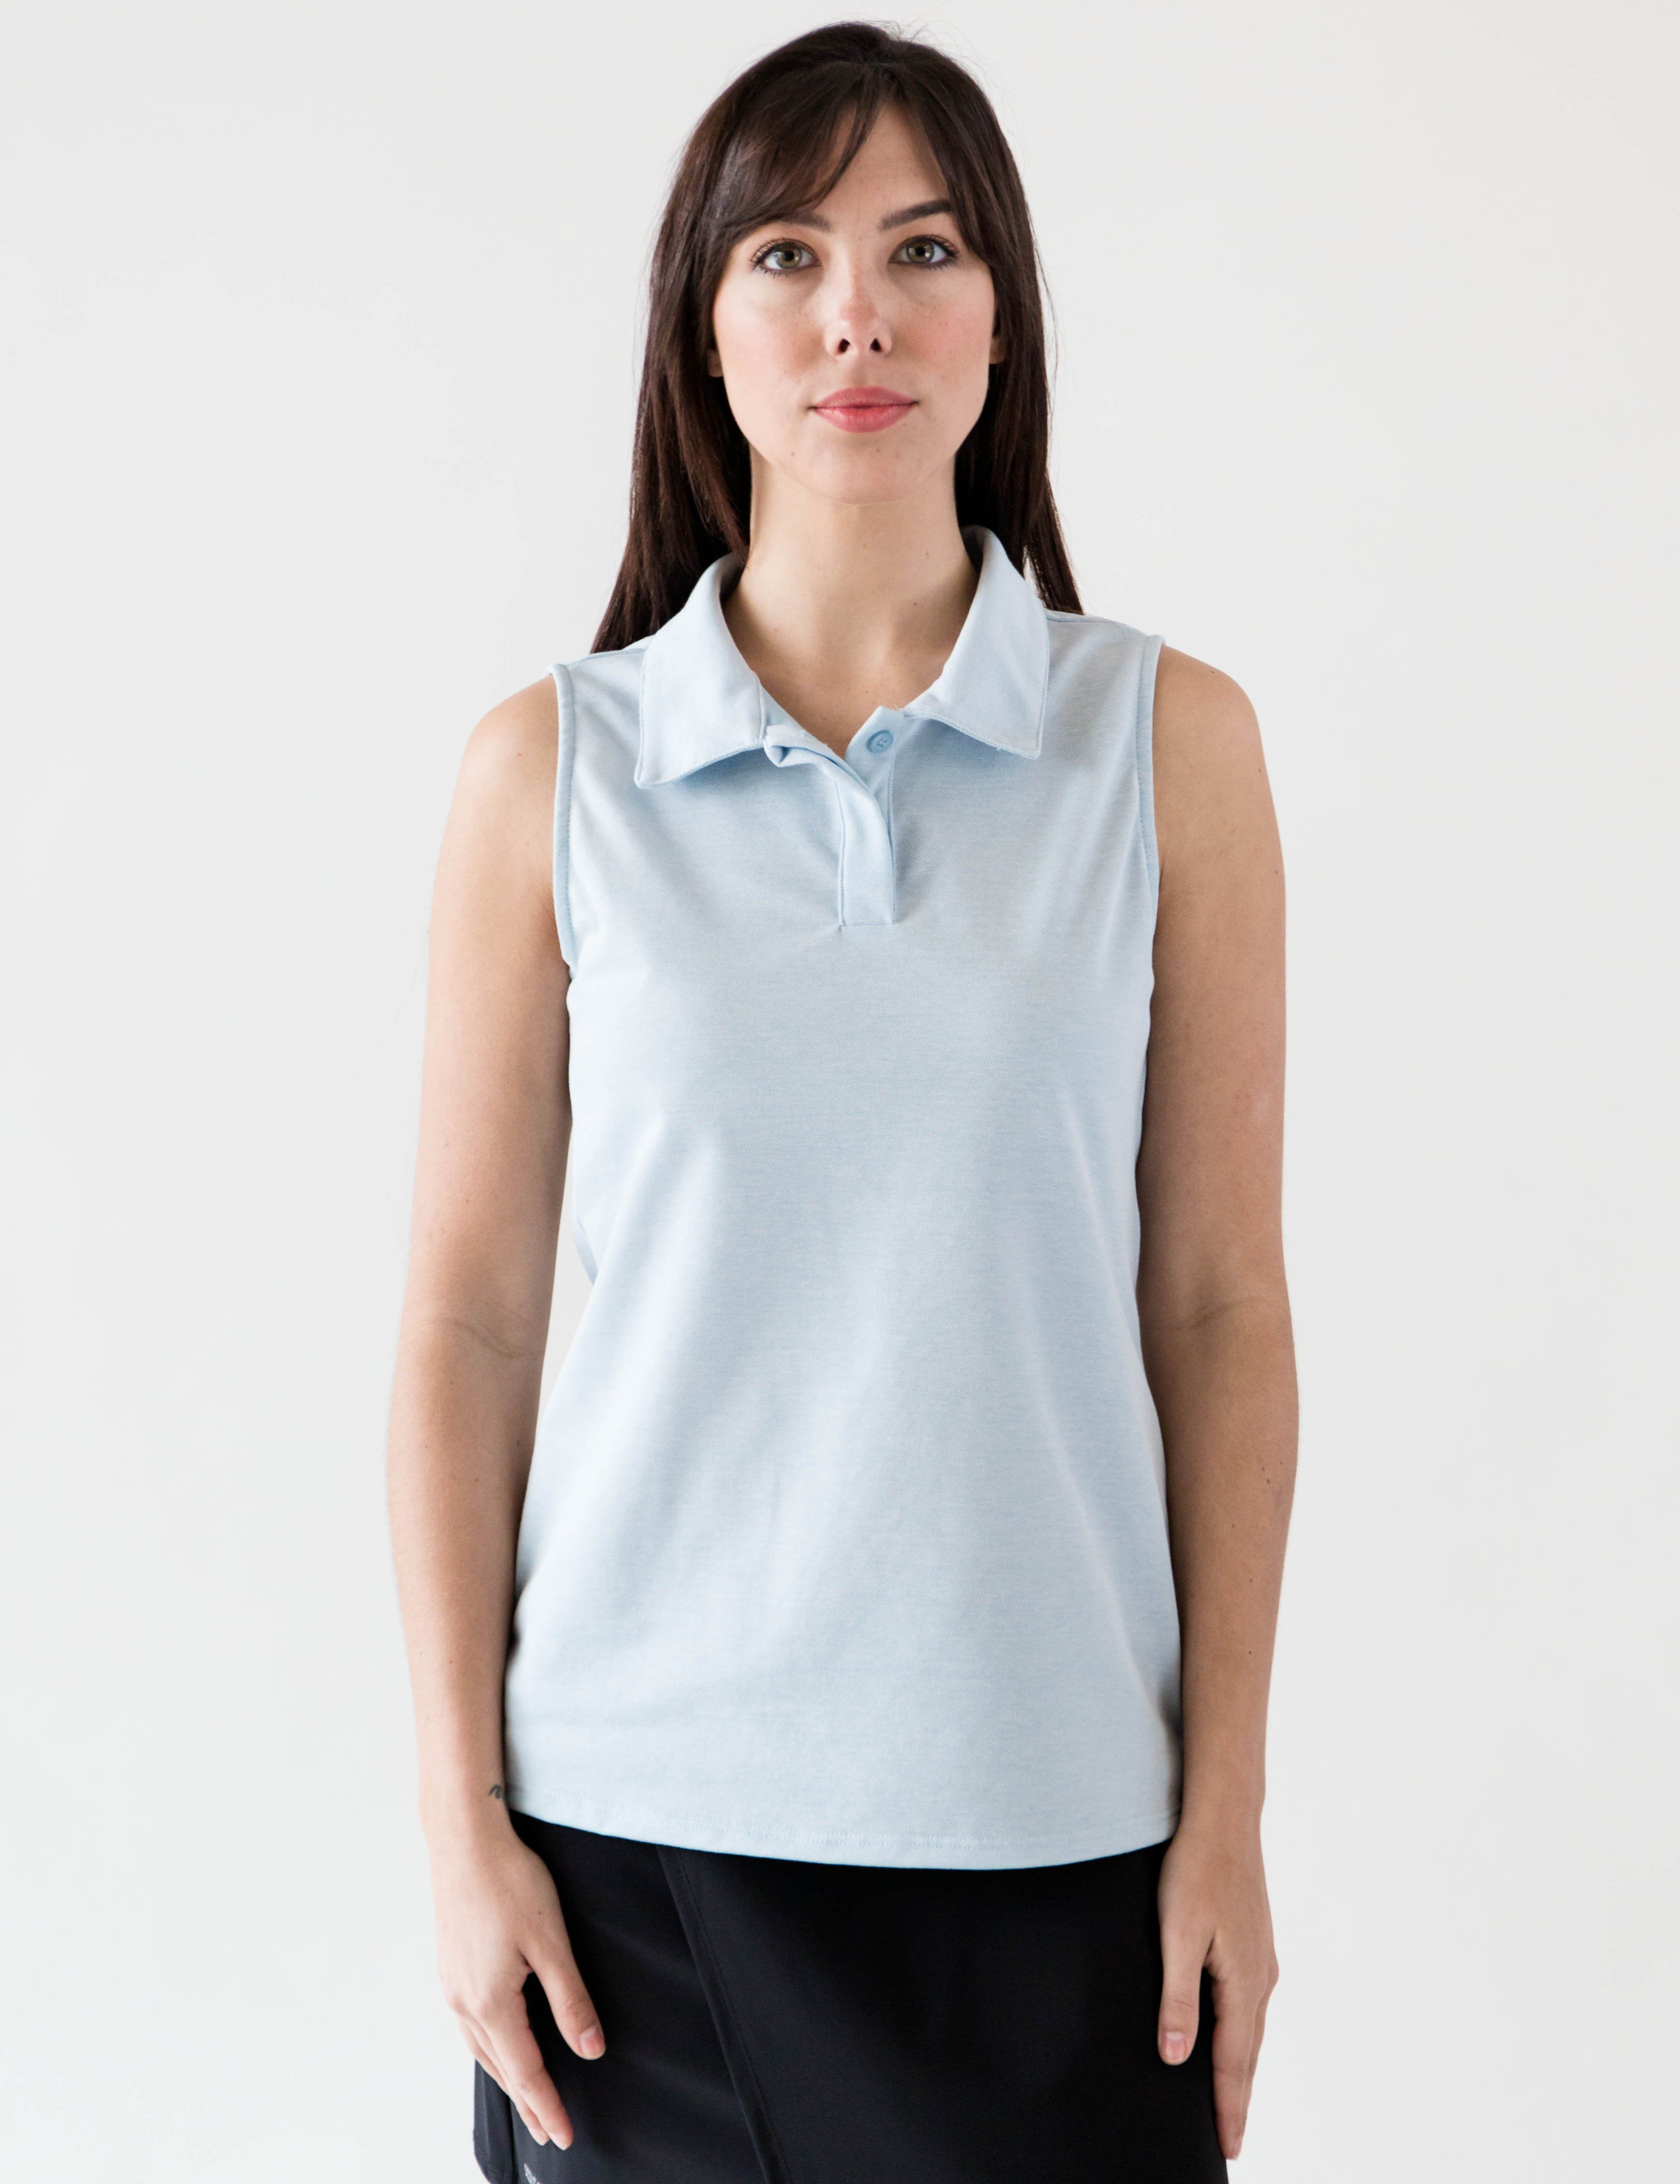 80890f4b Sleeveless Ladies Performance Polo-Clubs Golf Shirt. The cotton-poly-pique  fabric